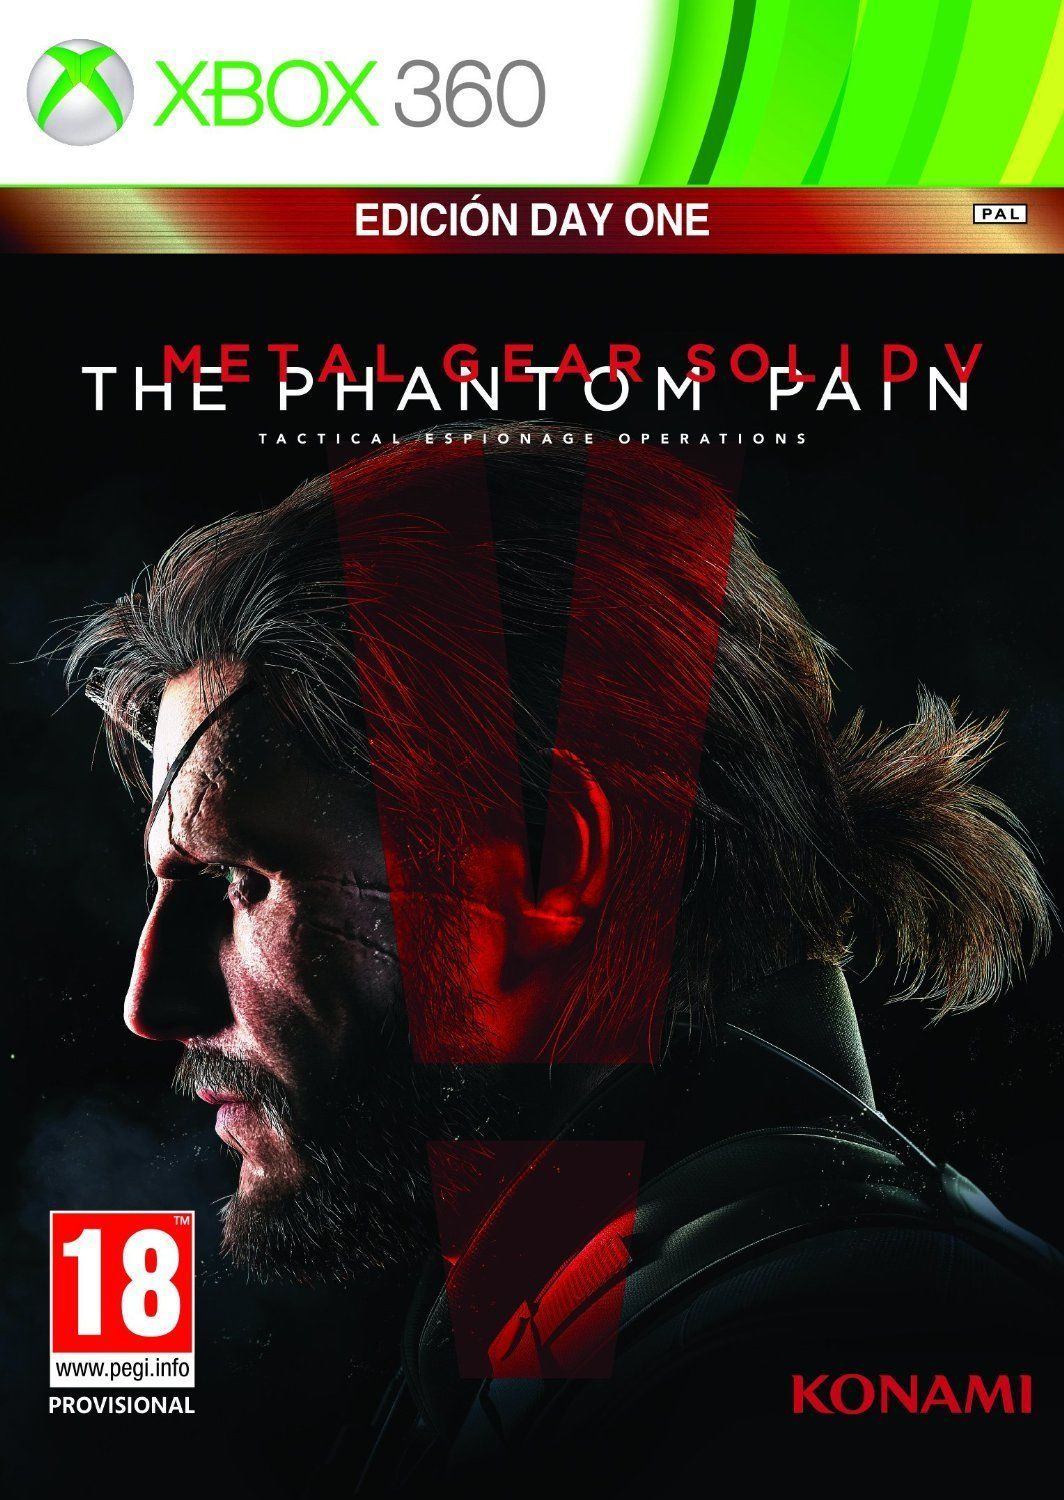 Imagen 320 de Metal Gear Solid V: The Phantom Pain para Xbox 360